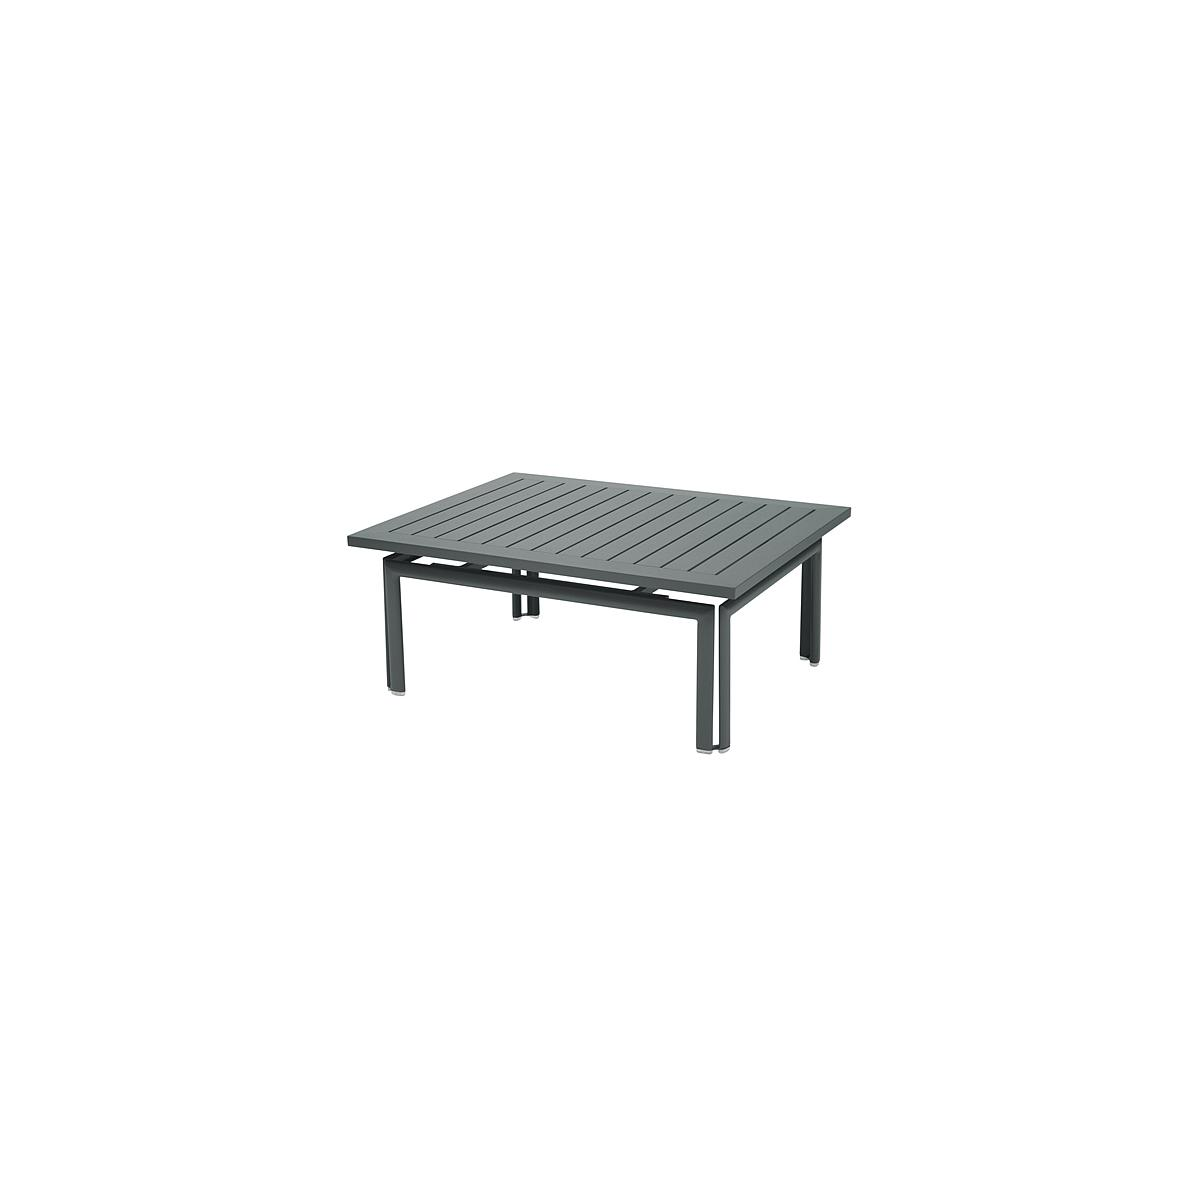 COSTA by Fermob Table basse Gris orage